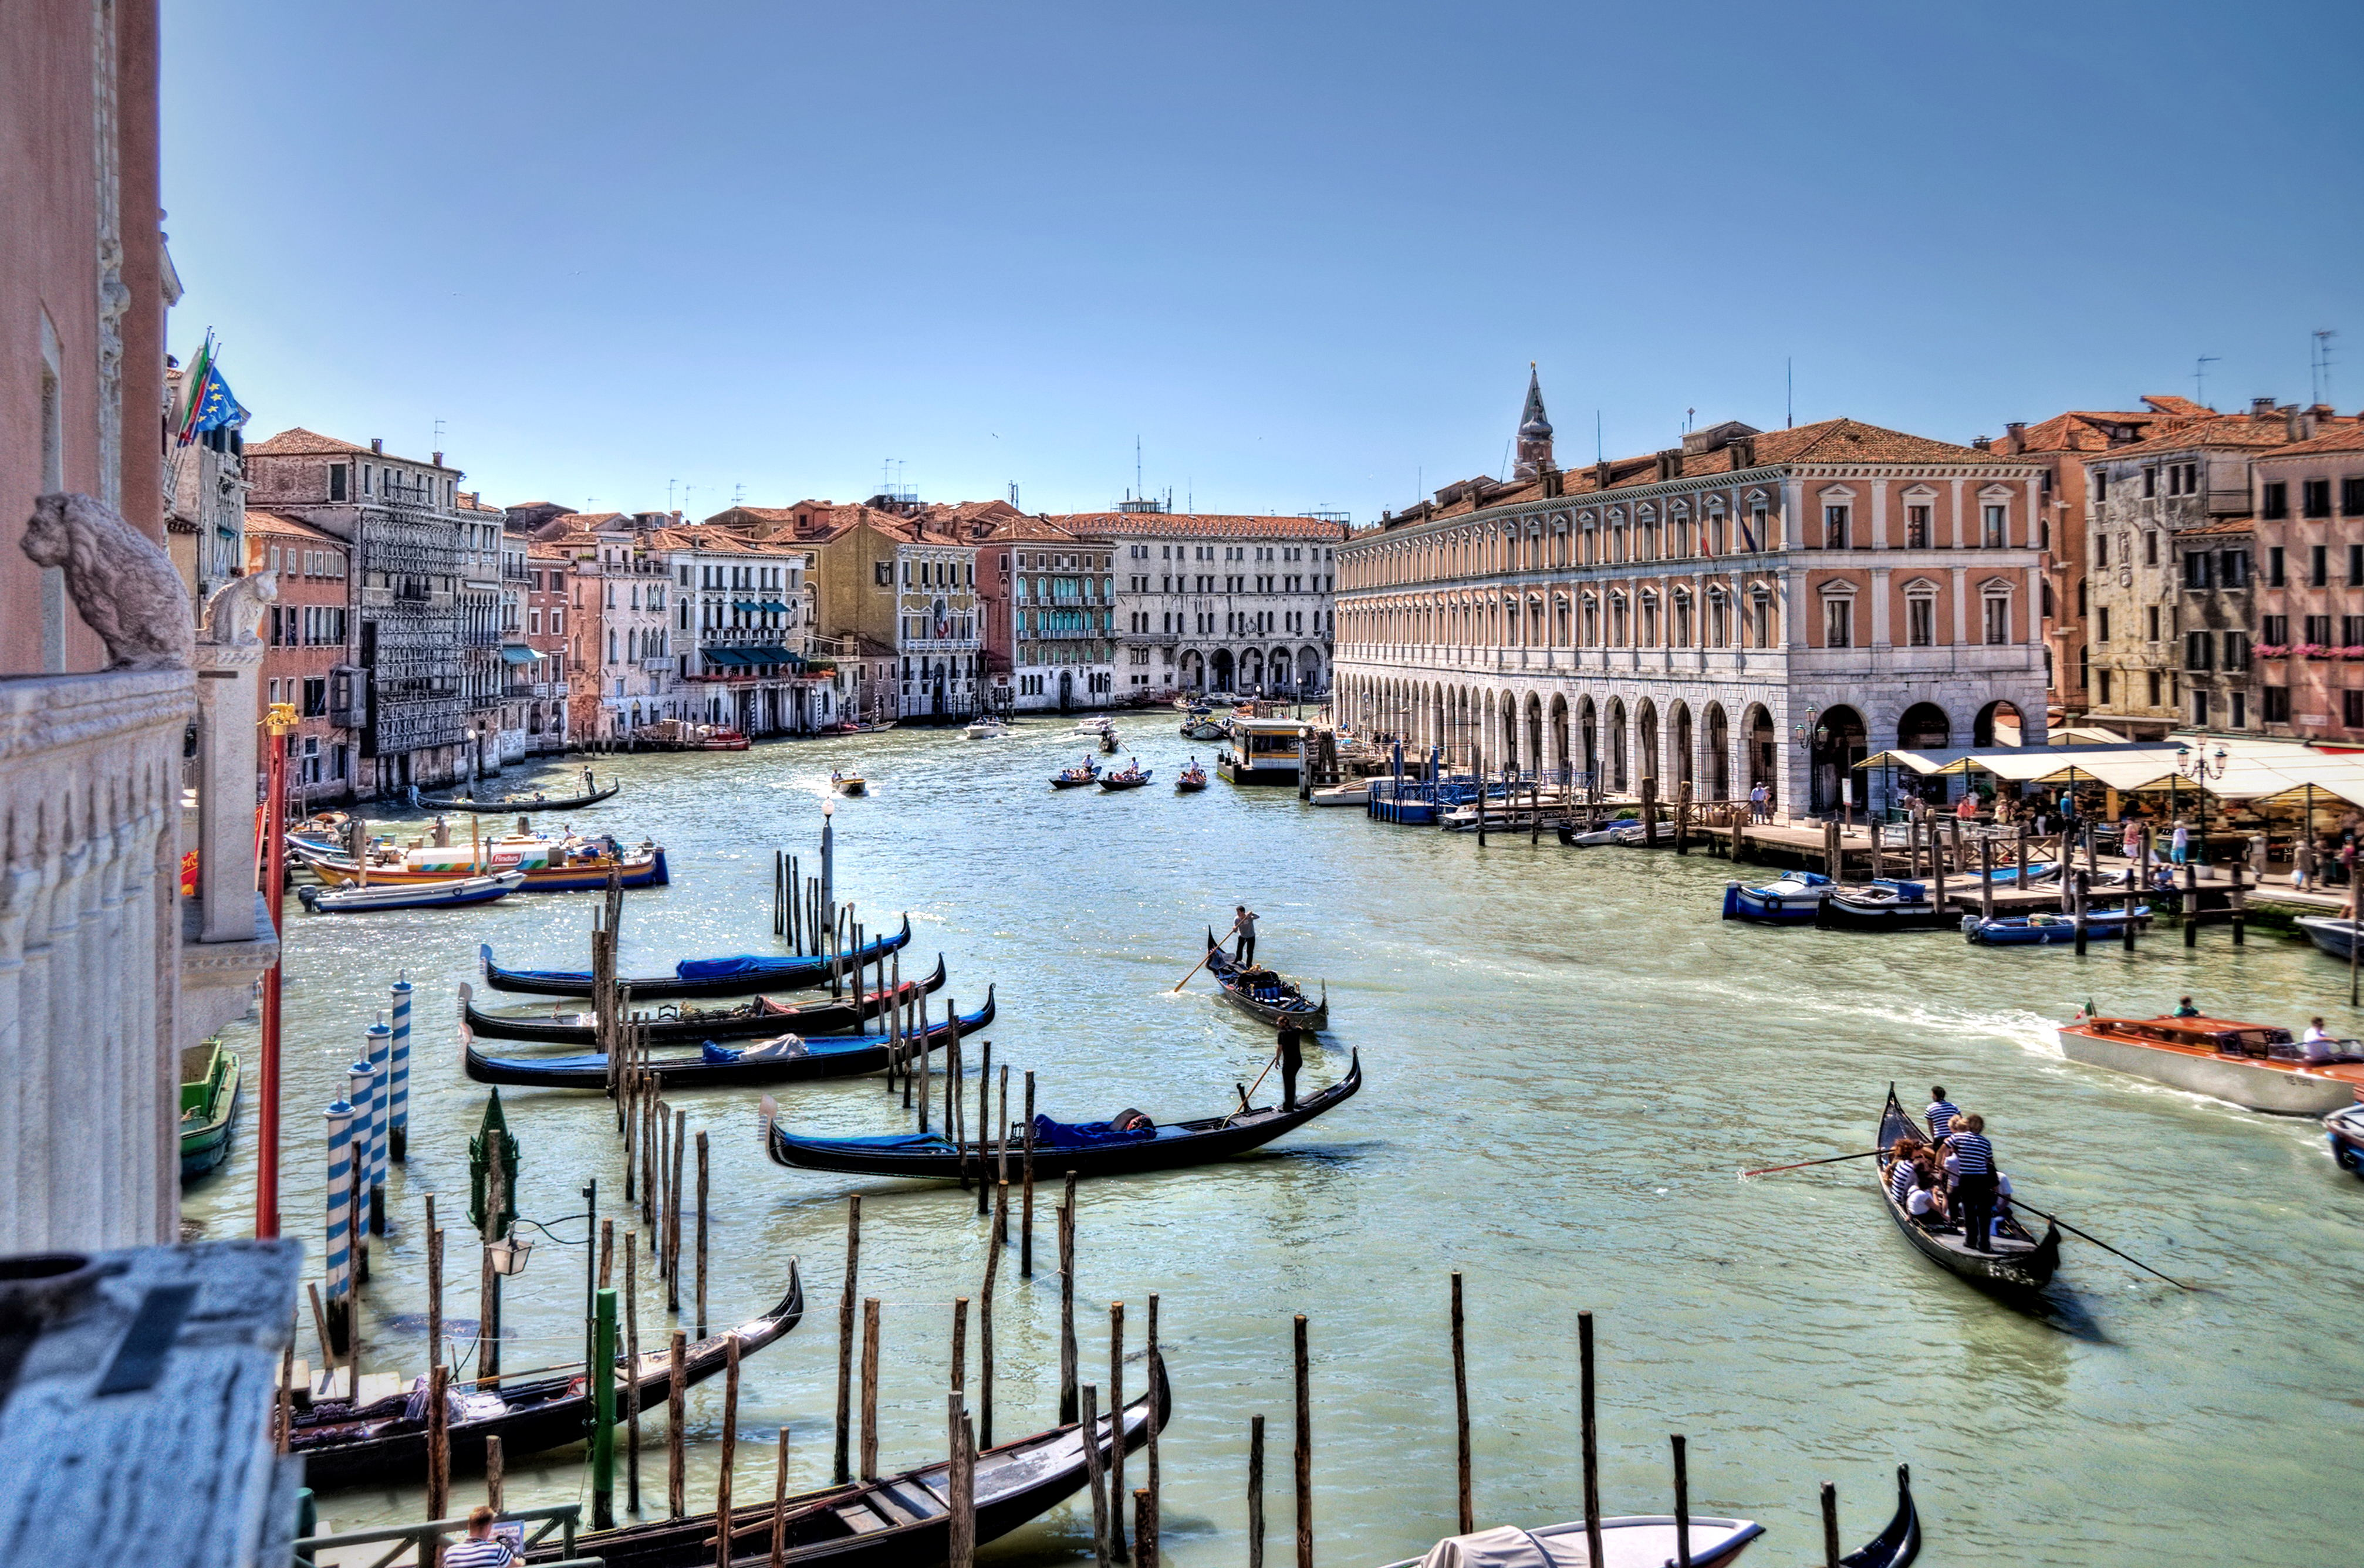 Hotel_Ca_Sagredo_-_Grand_Canal_-_Venice_Italy_Venezia_-_photo_by_gnuckx_and_HDR_processing_by_Mike_G._K._(4715151316)